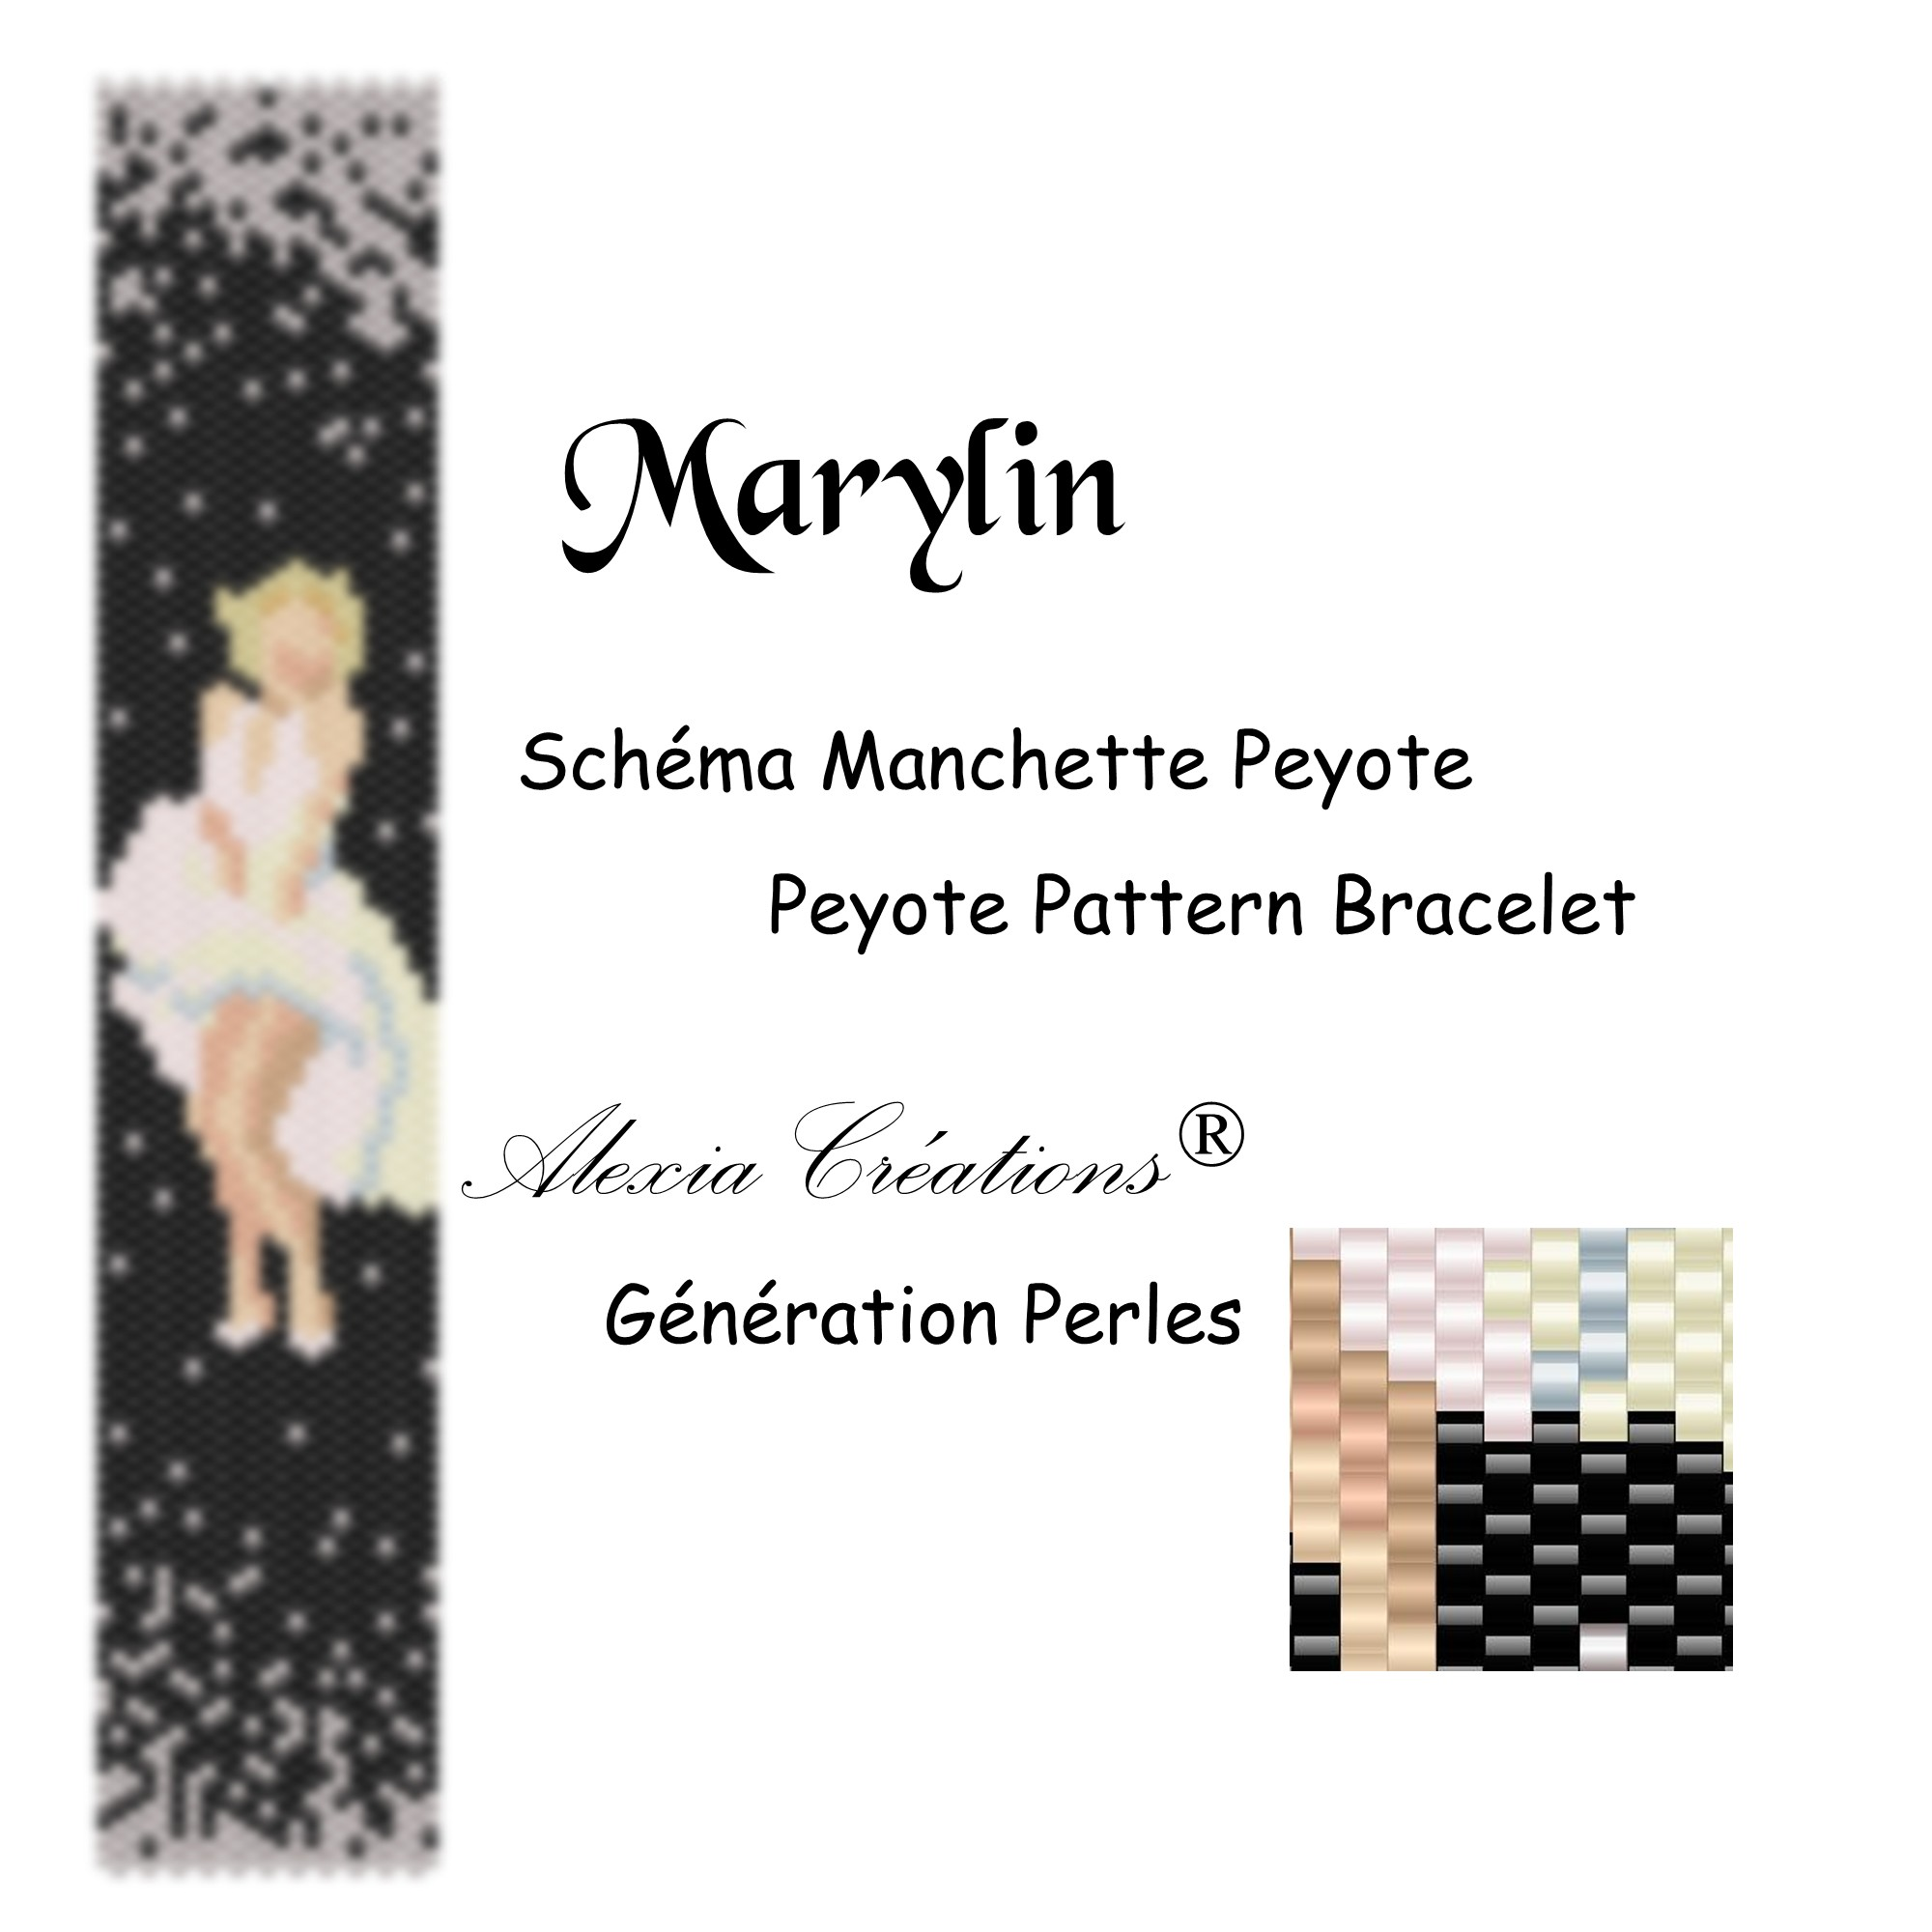 Manchette peyote impair Maryllin